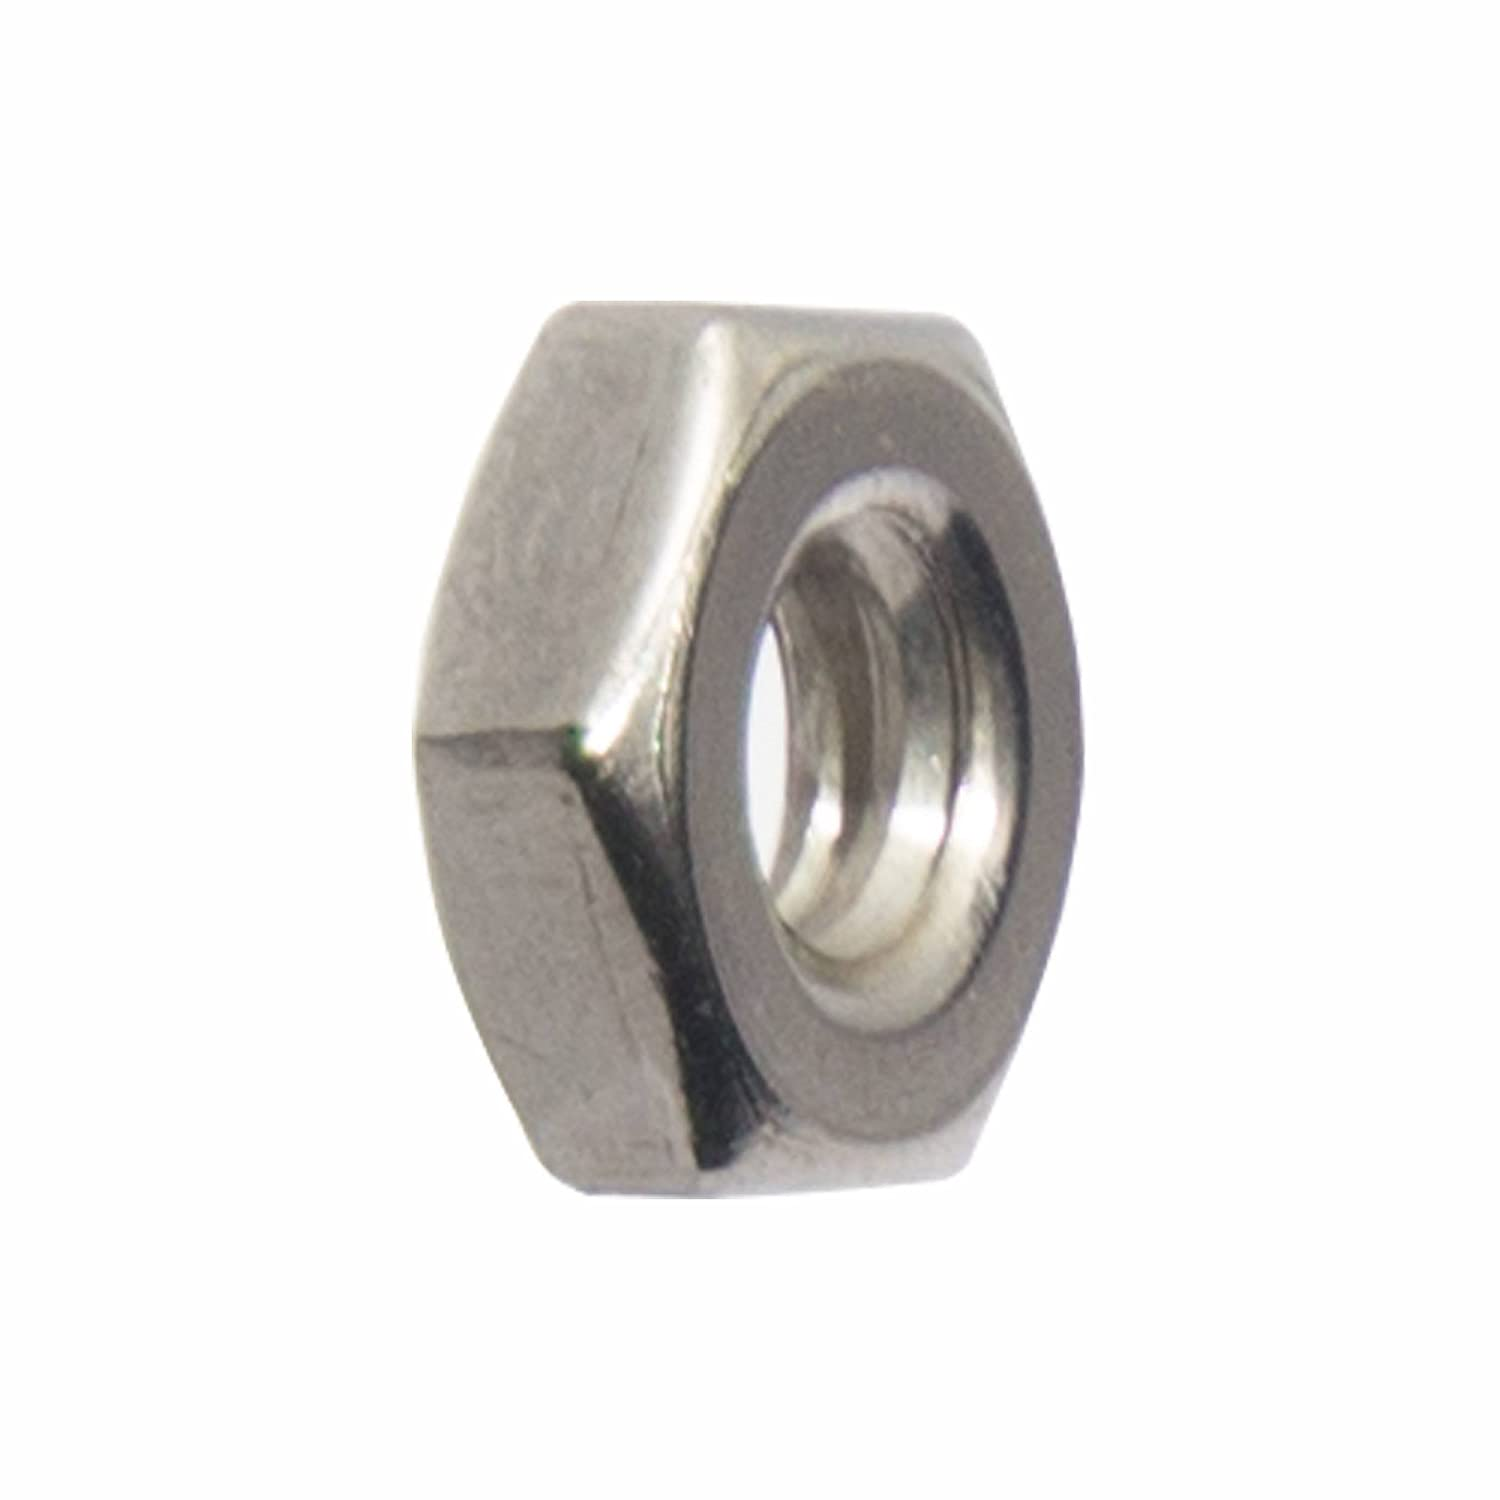 Stainless Steel 18-8 Quantity 100 By Fastenere 6-32 Machine Screw Hex Nuts Bright Finish